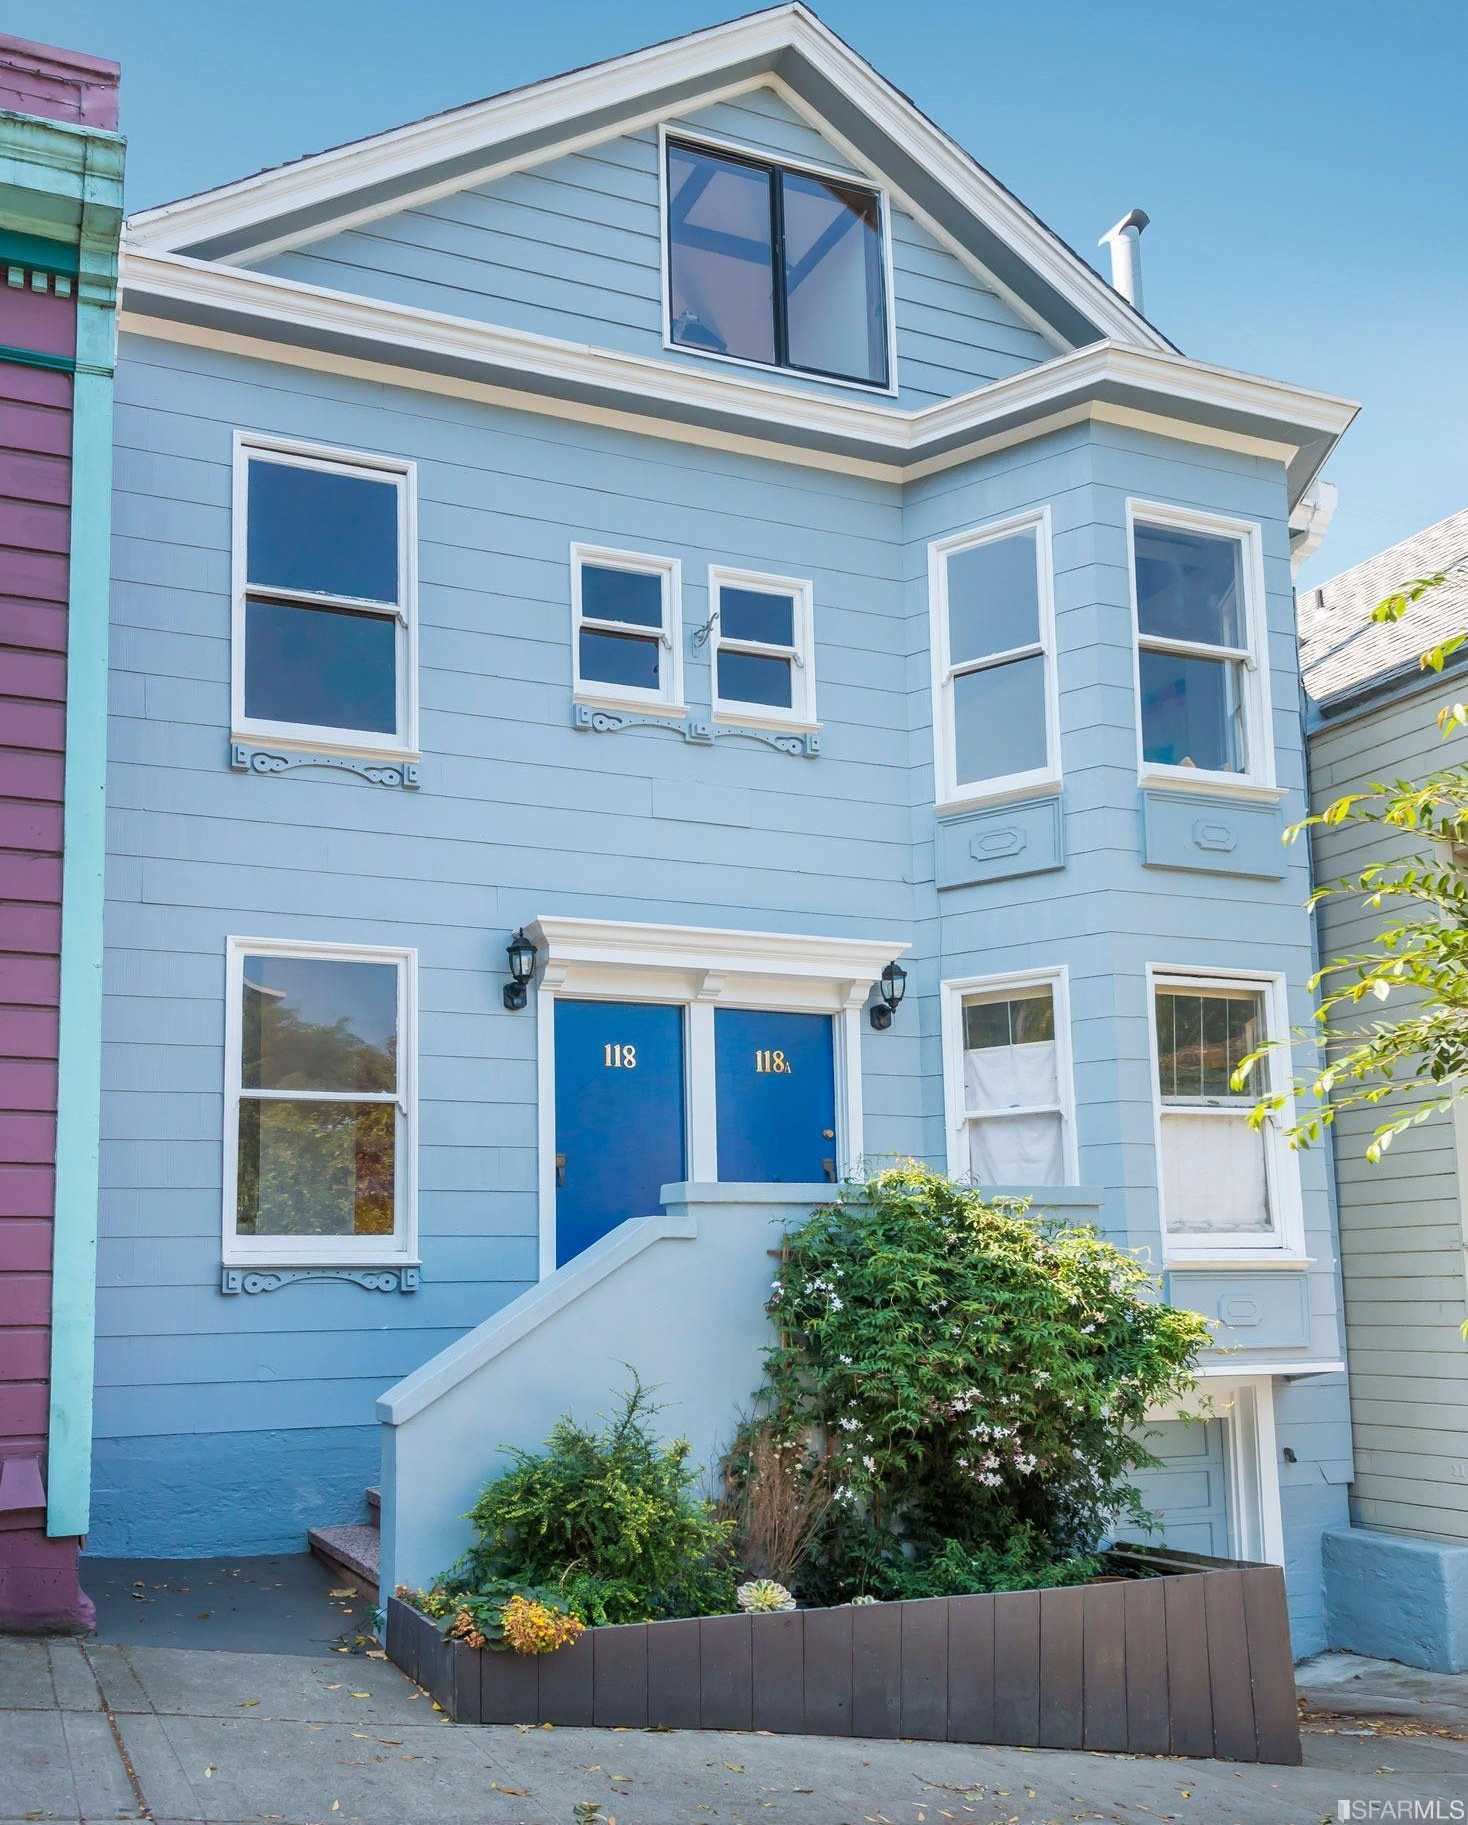 118 Virginia Ave San Francisco, CA 94110